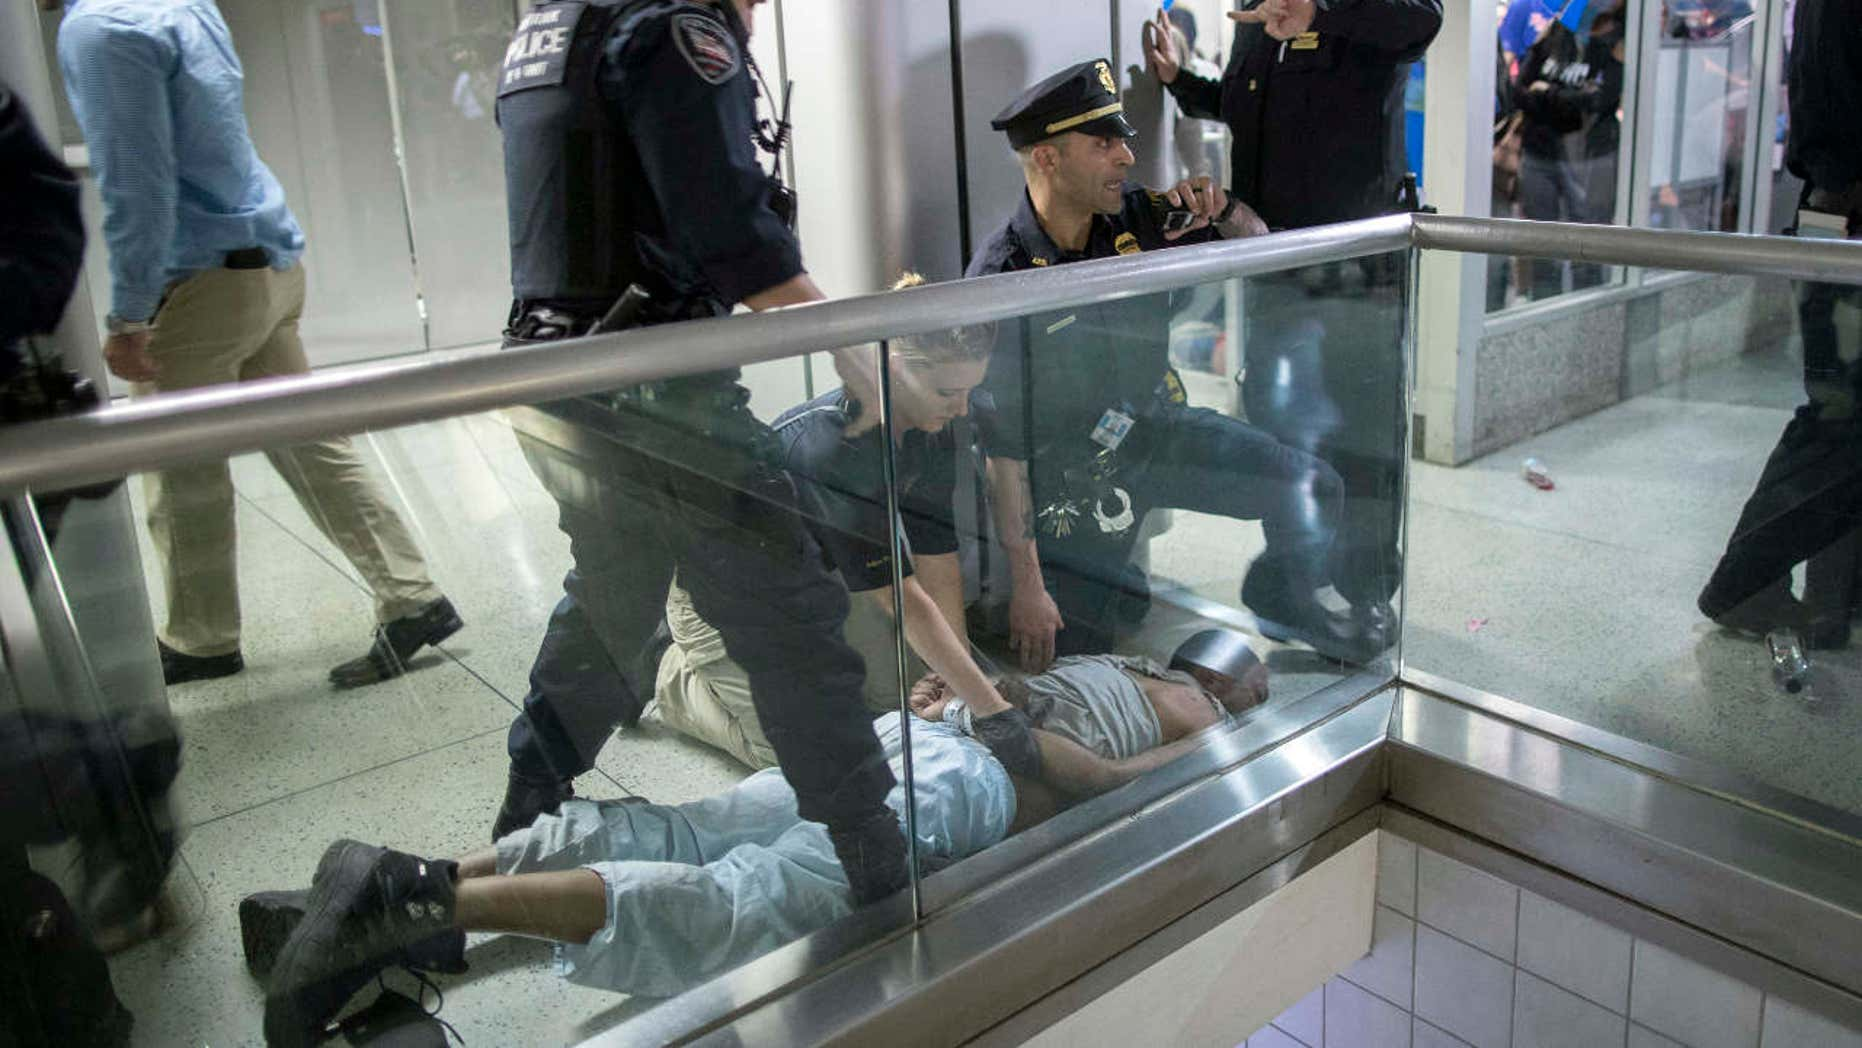 New York City police officers detain a passenger from a disabled New Jersey Transit train who became belligerent and sparked a stampede among passengers leaving the overcrowded station once the train finally arrived at New York's Penn Station, Friday, April 14, 2017.